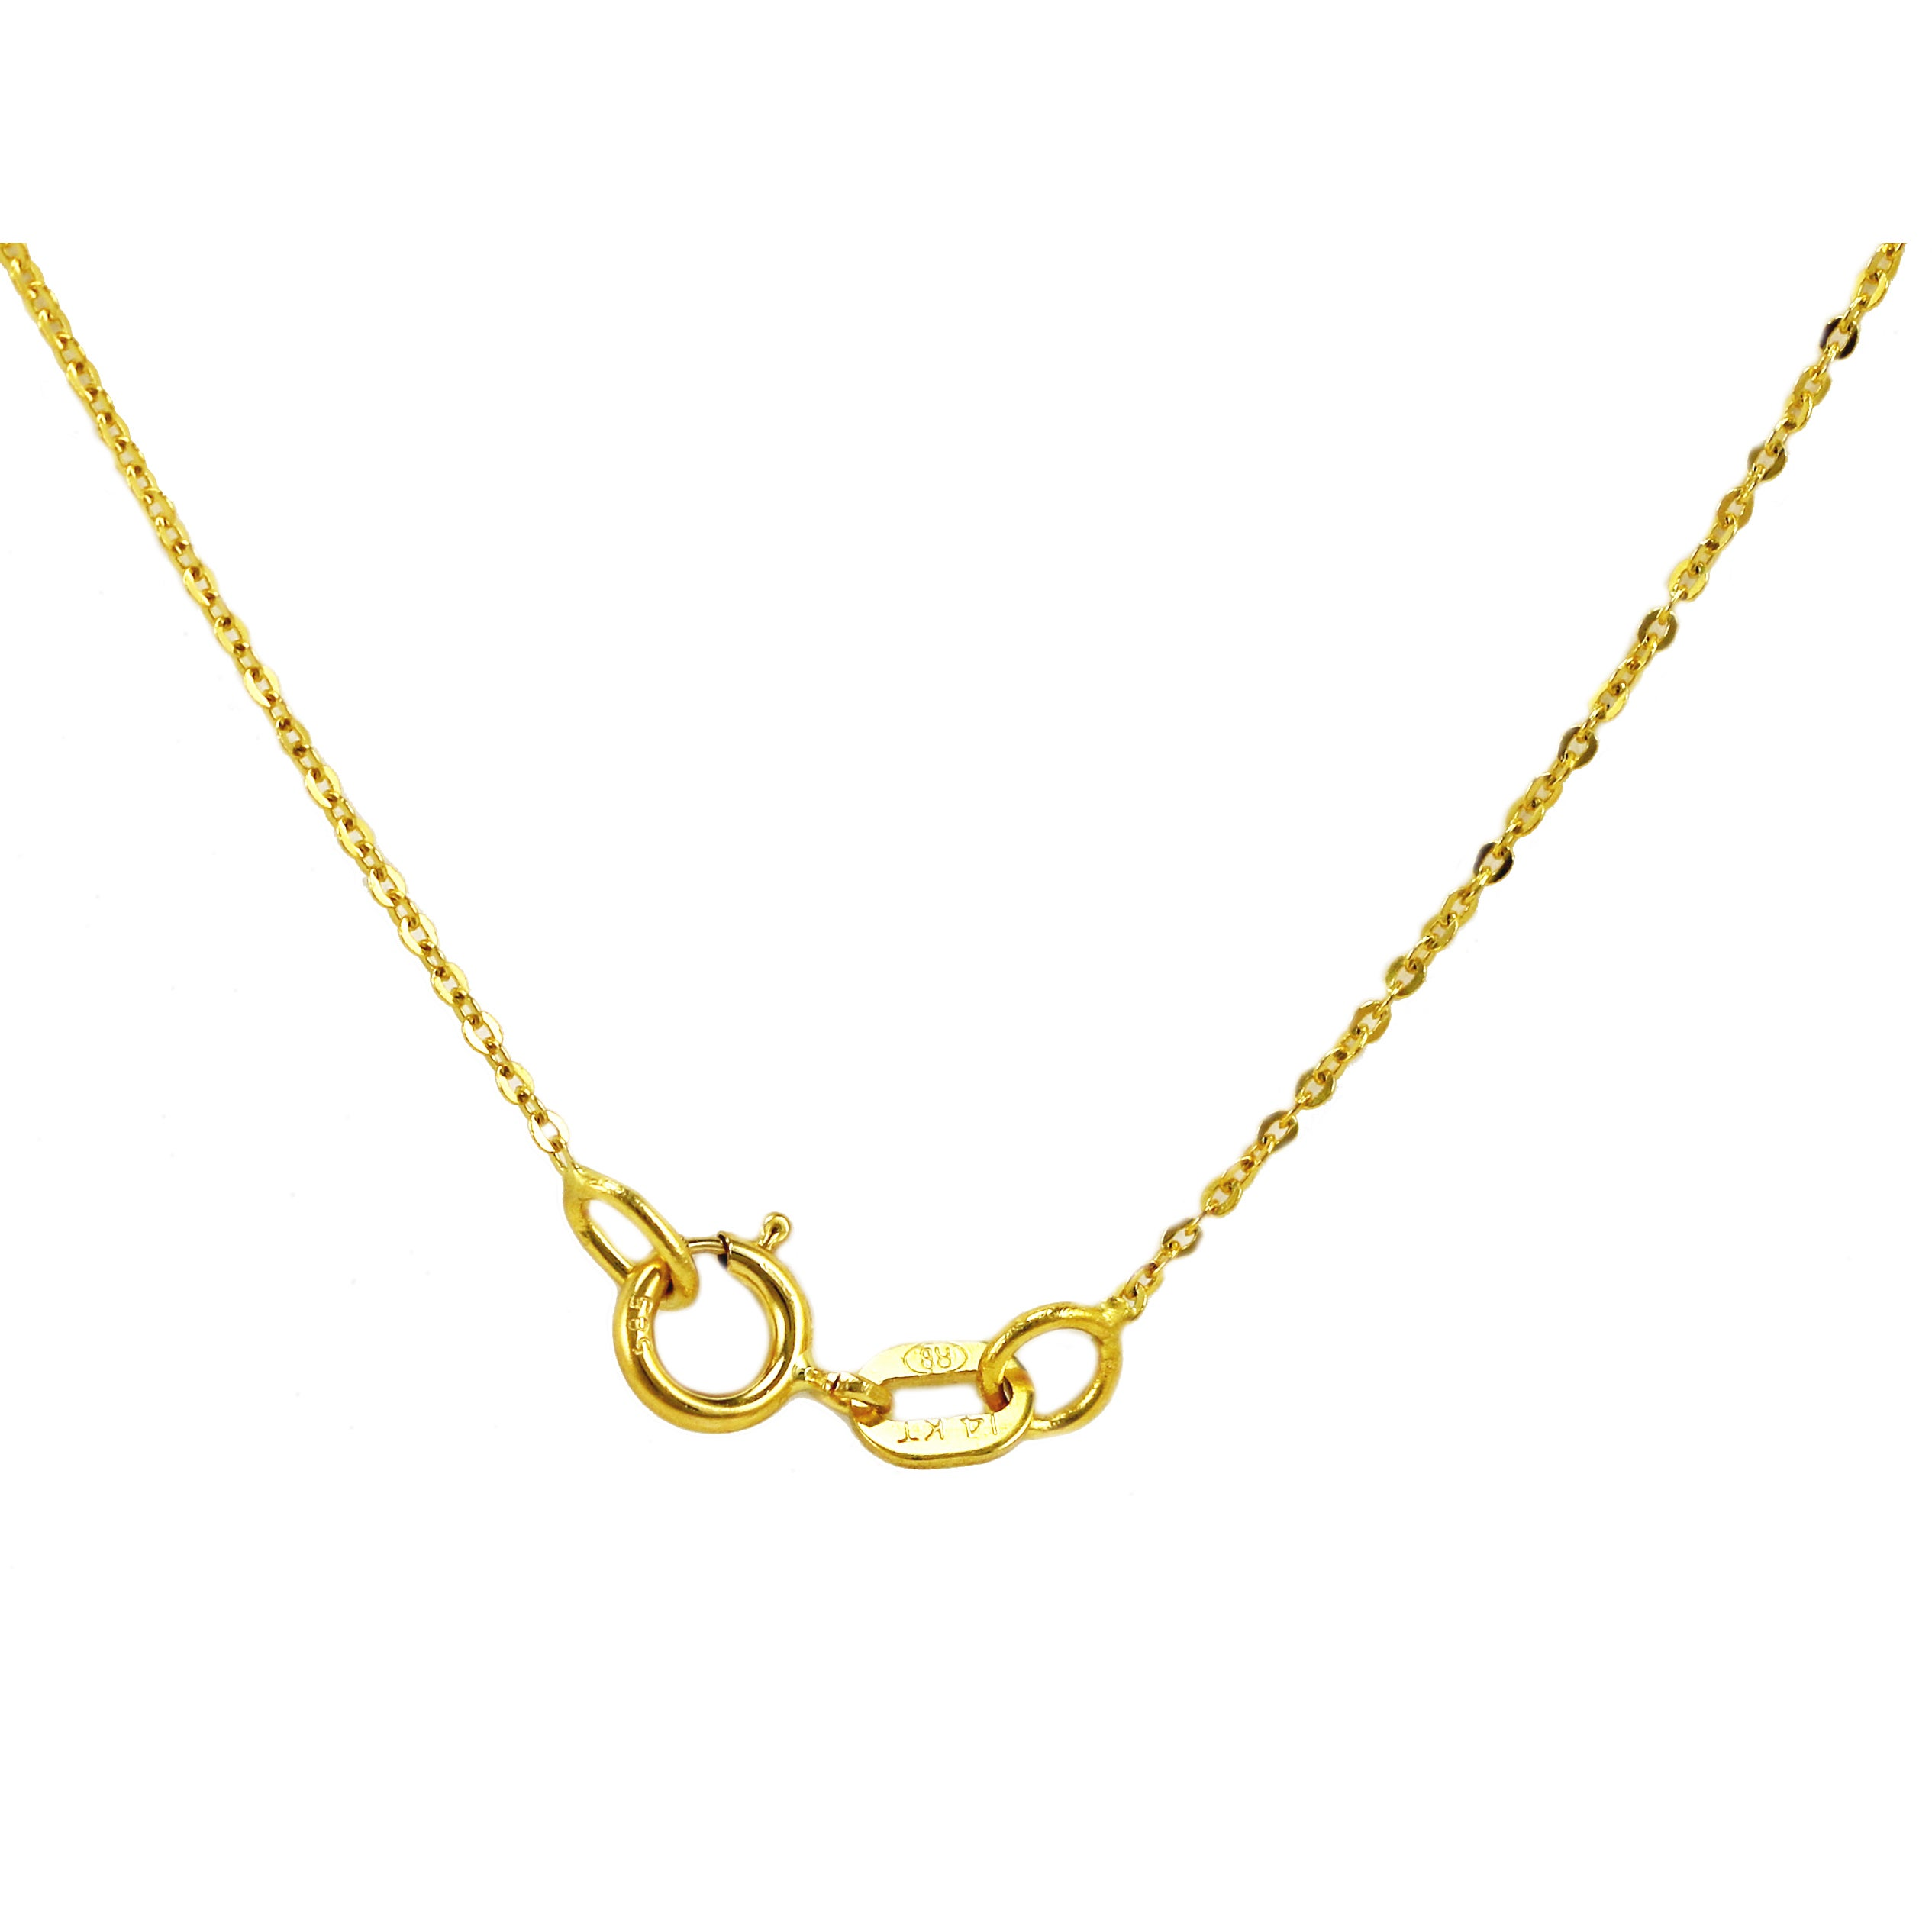 bybiehl necklace you me together gold